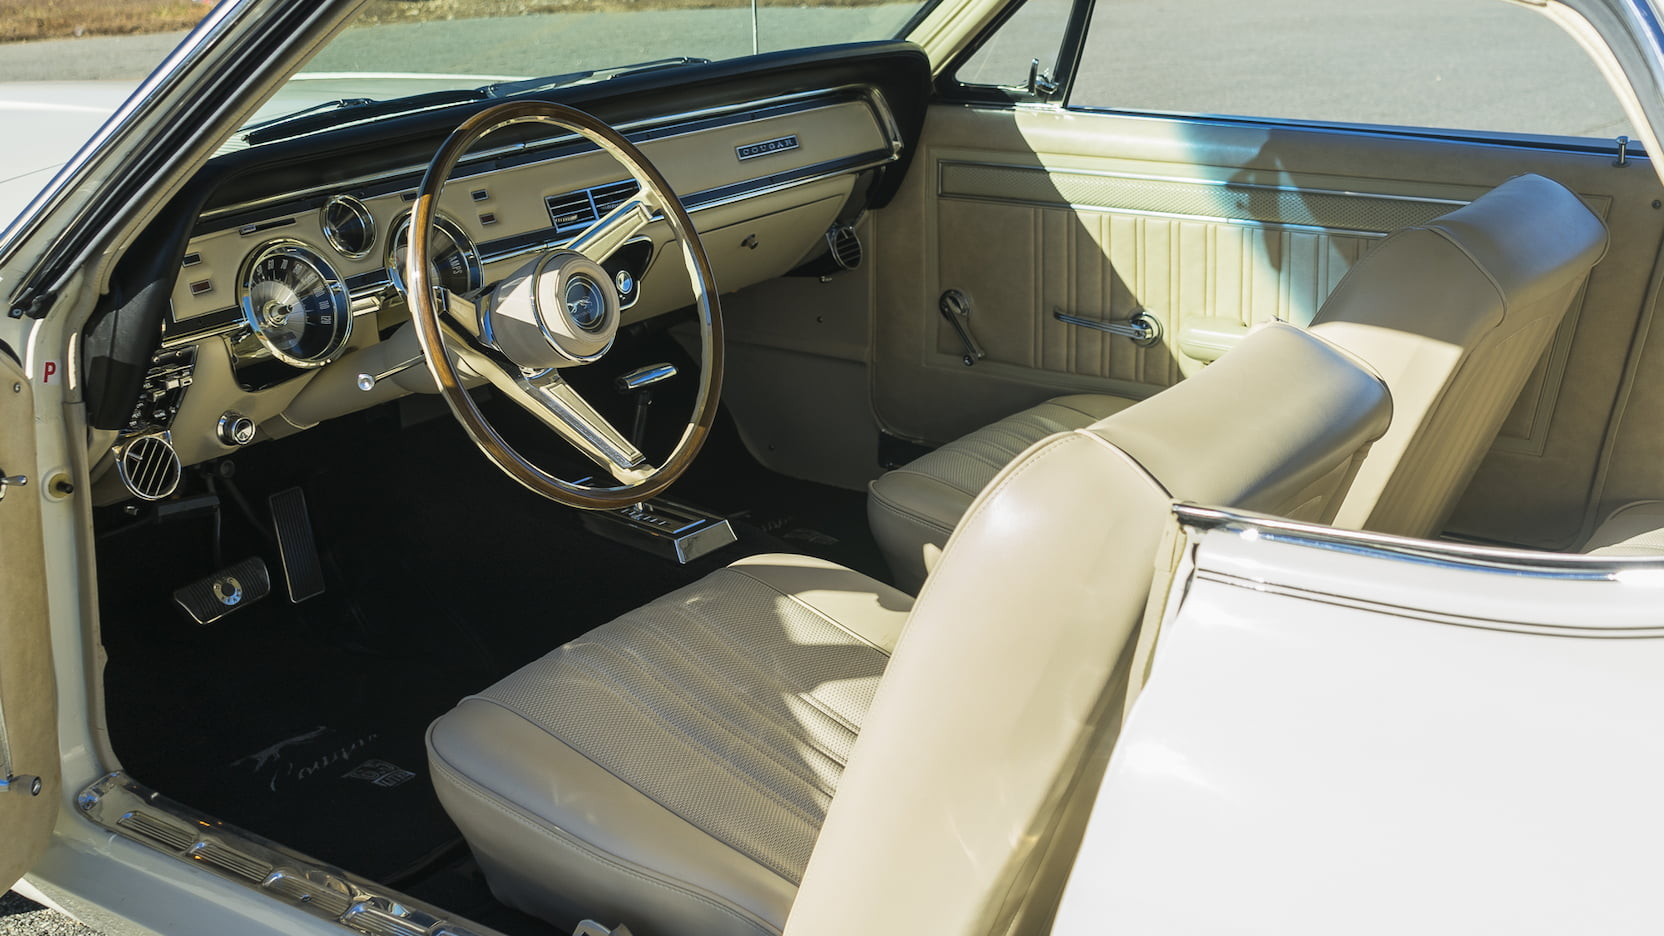 1967 Mercury Cougar interior